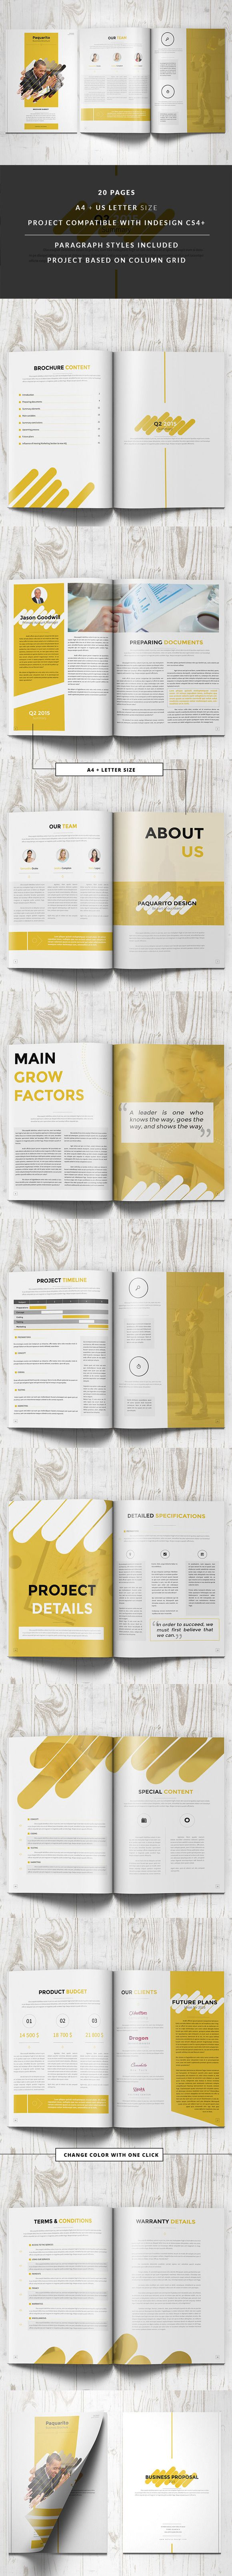 Paquarito Business Proposal by Kahuna Design on Creative Market